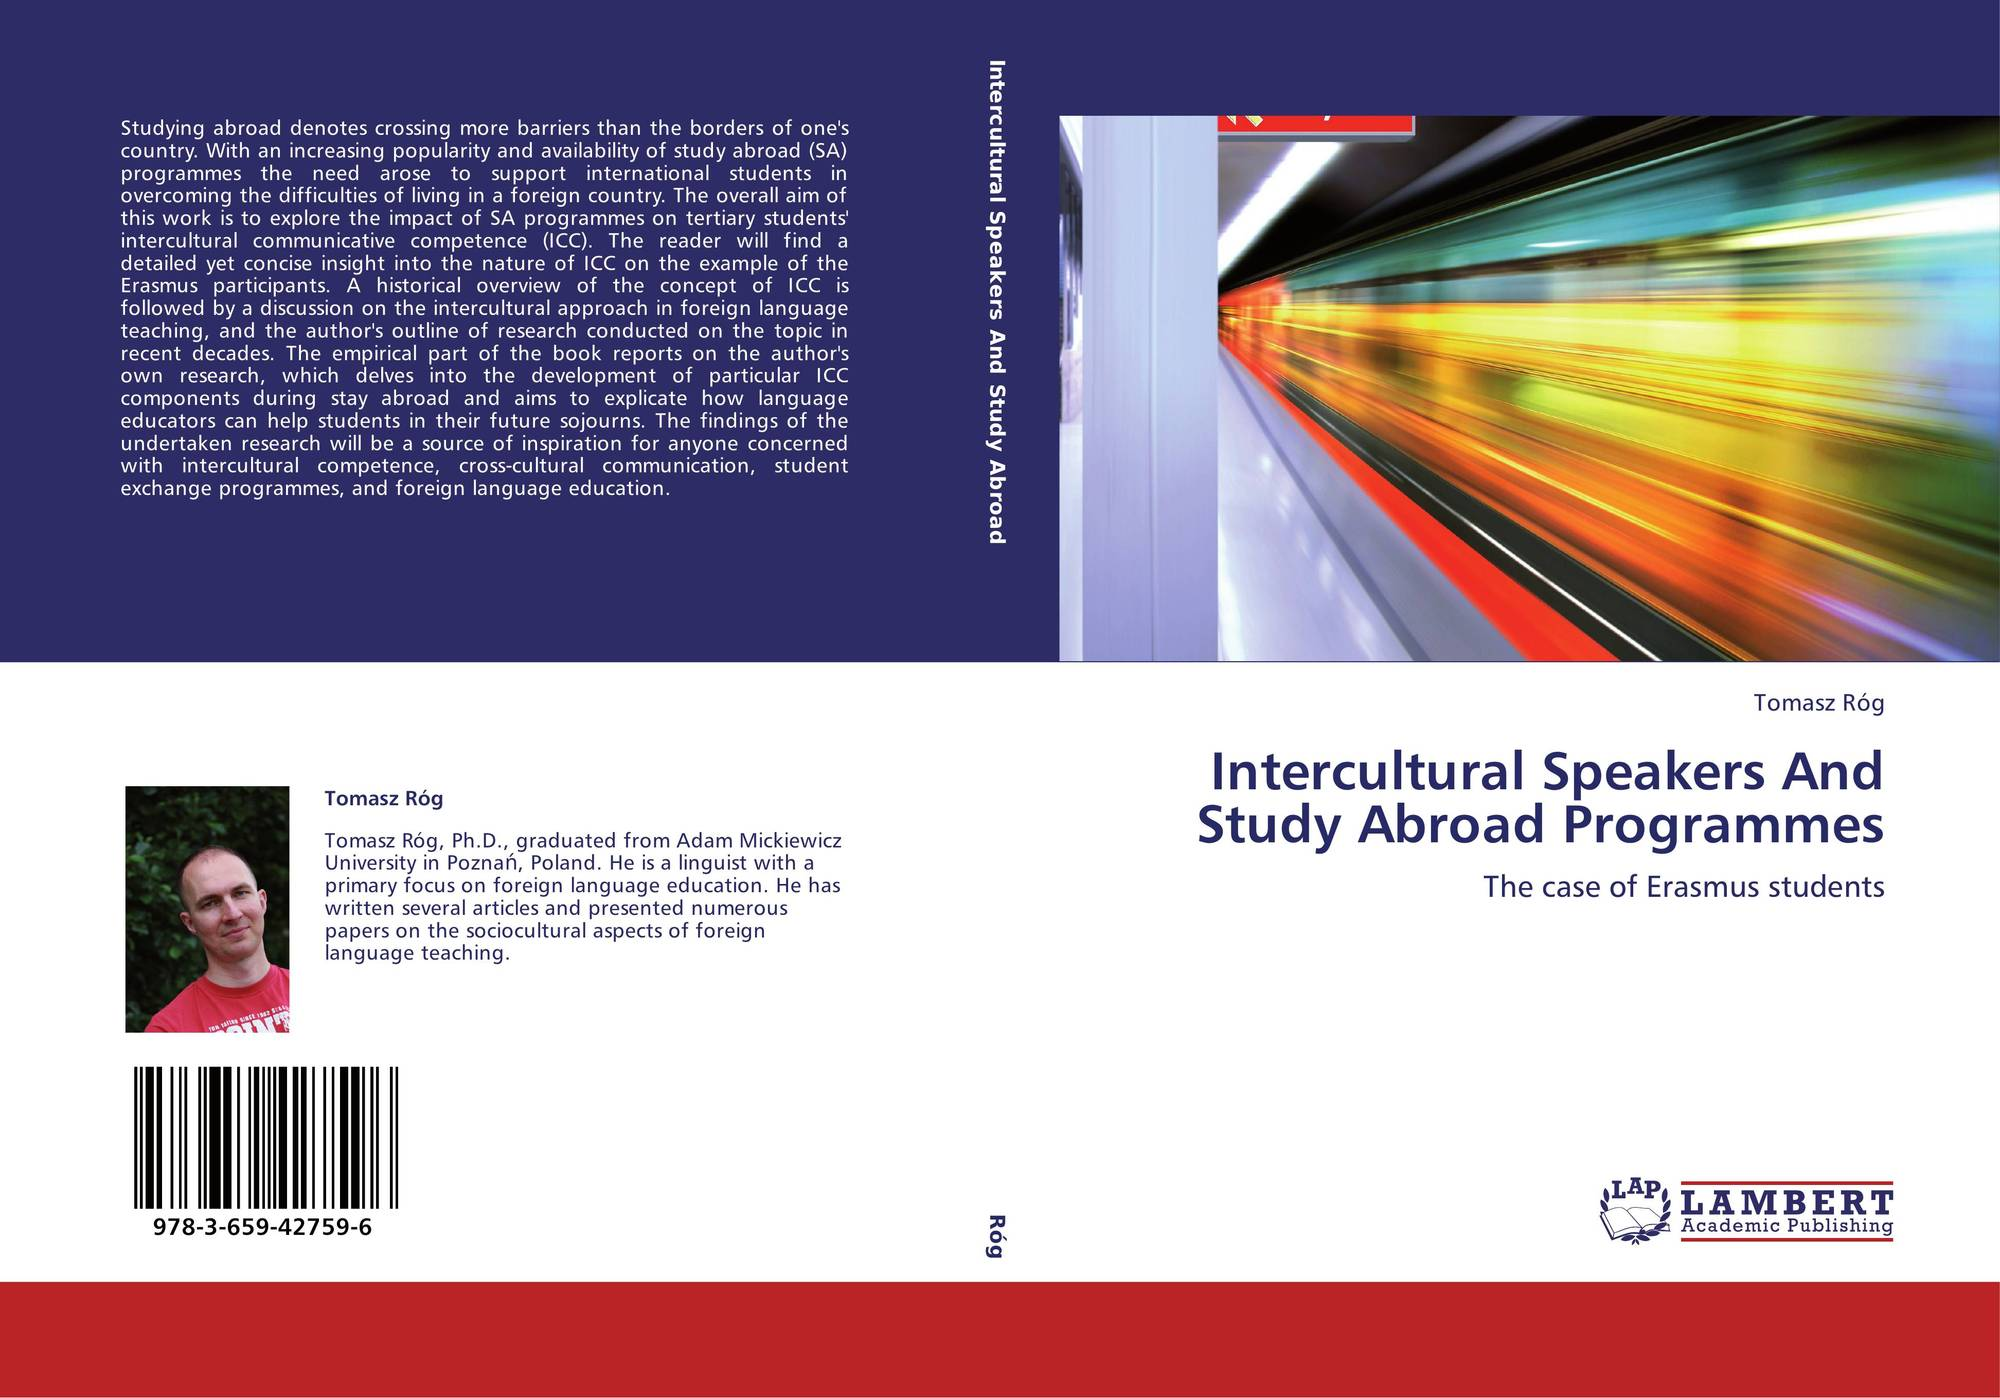 the impact of studying abroad on second language education essay Using an online survey of american undergraduate students, this paper serves as a case study of a liberal arts college located in the southern united states (us) to explore the effects of studying abroad on students&#x2019 attitudes and behavior related to diversity upon their return to campus.